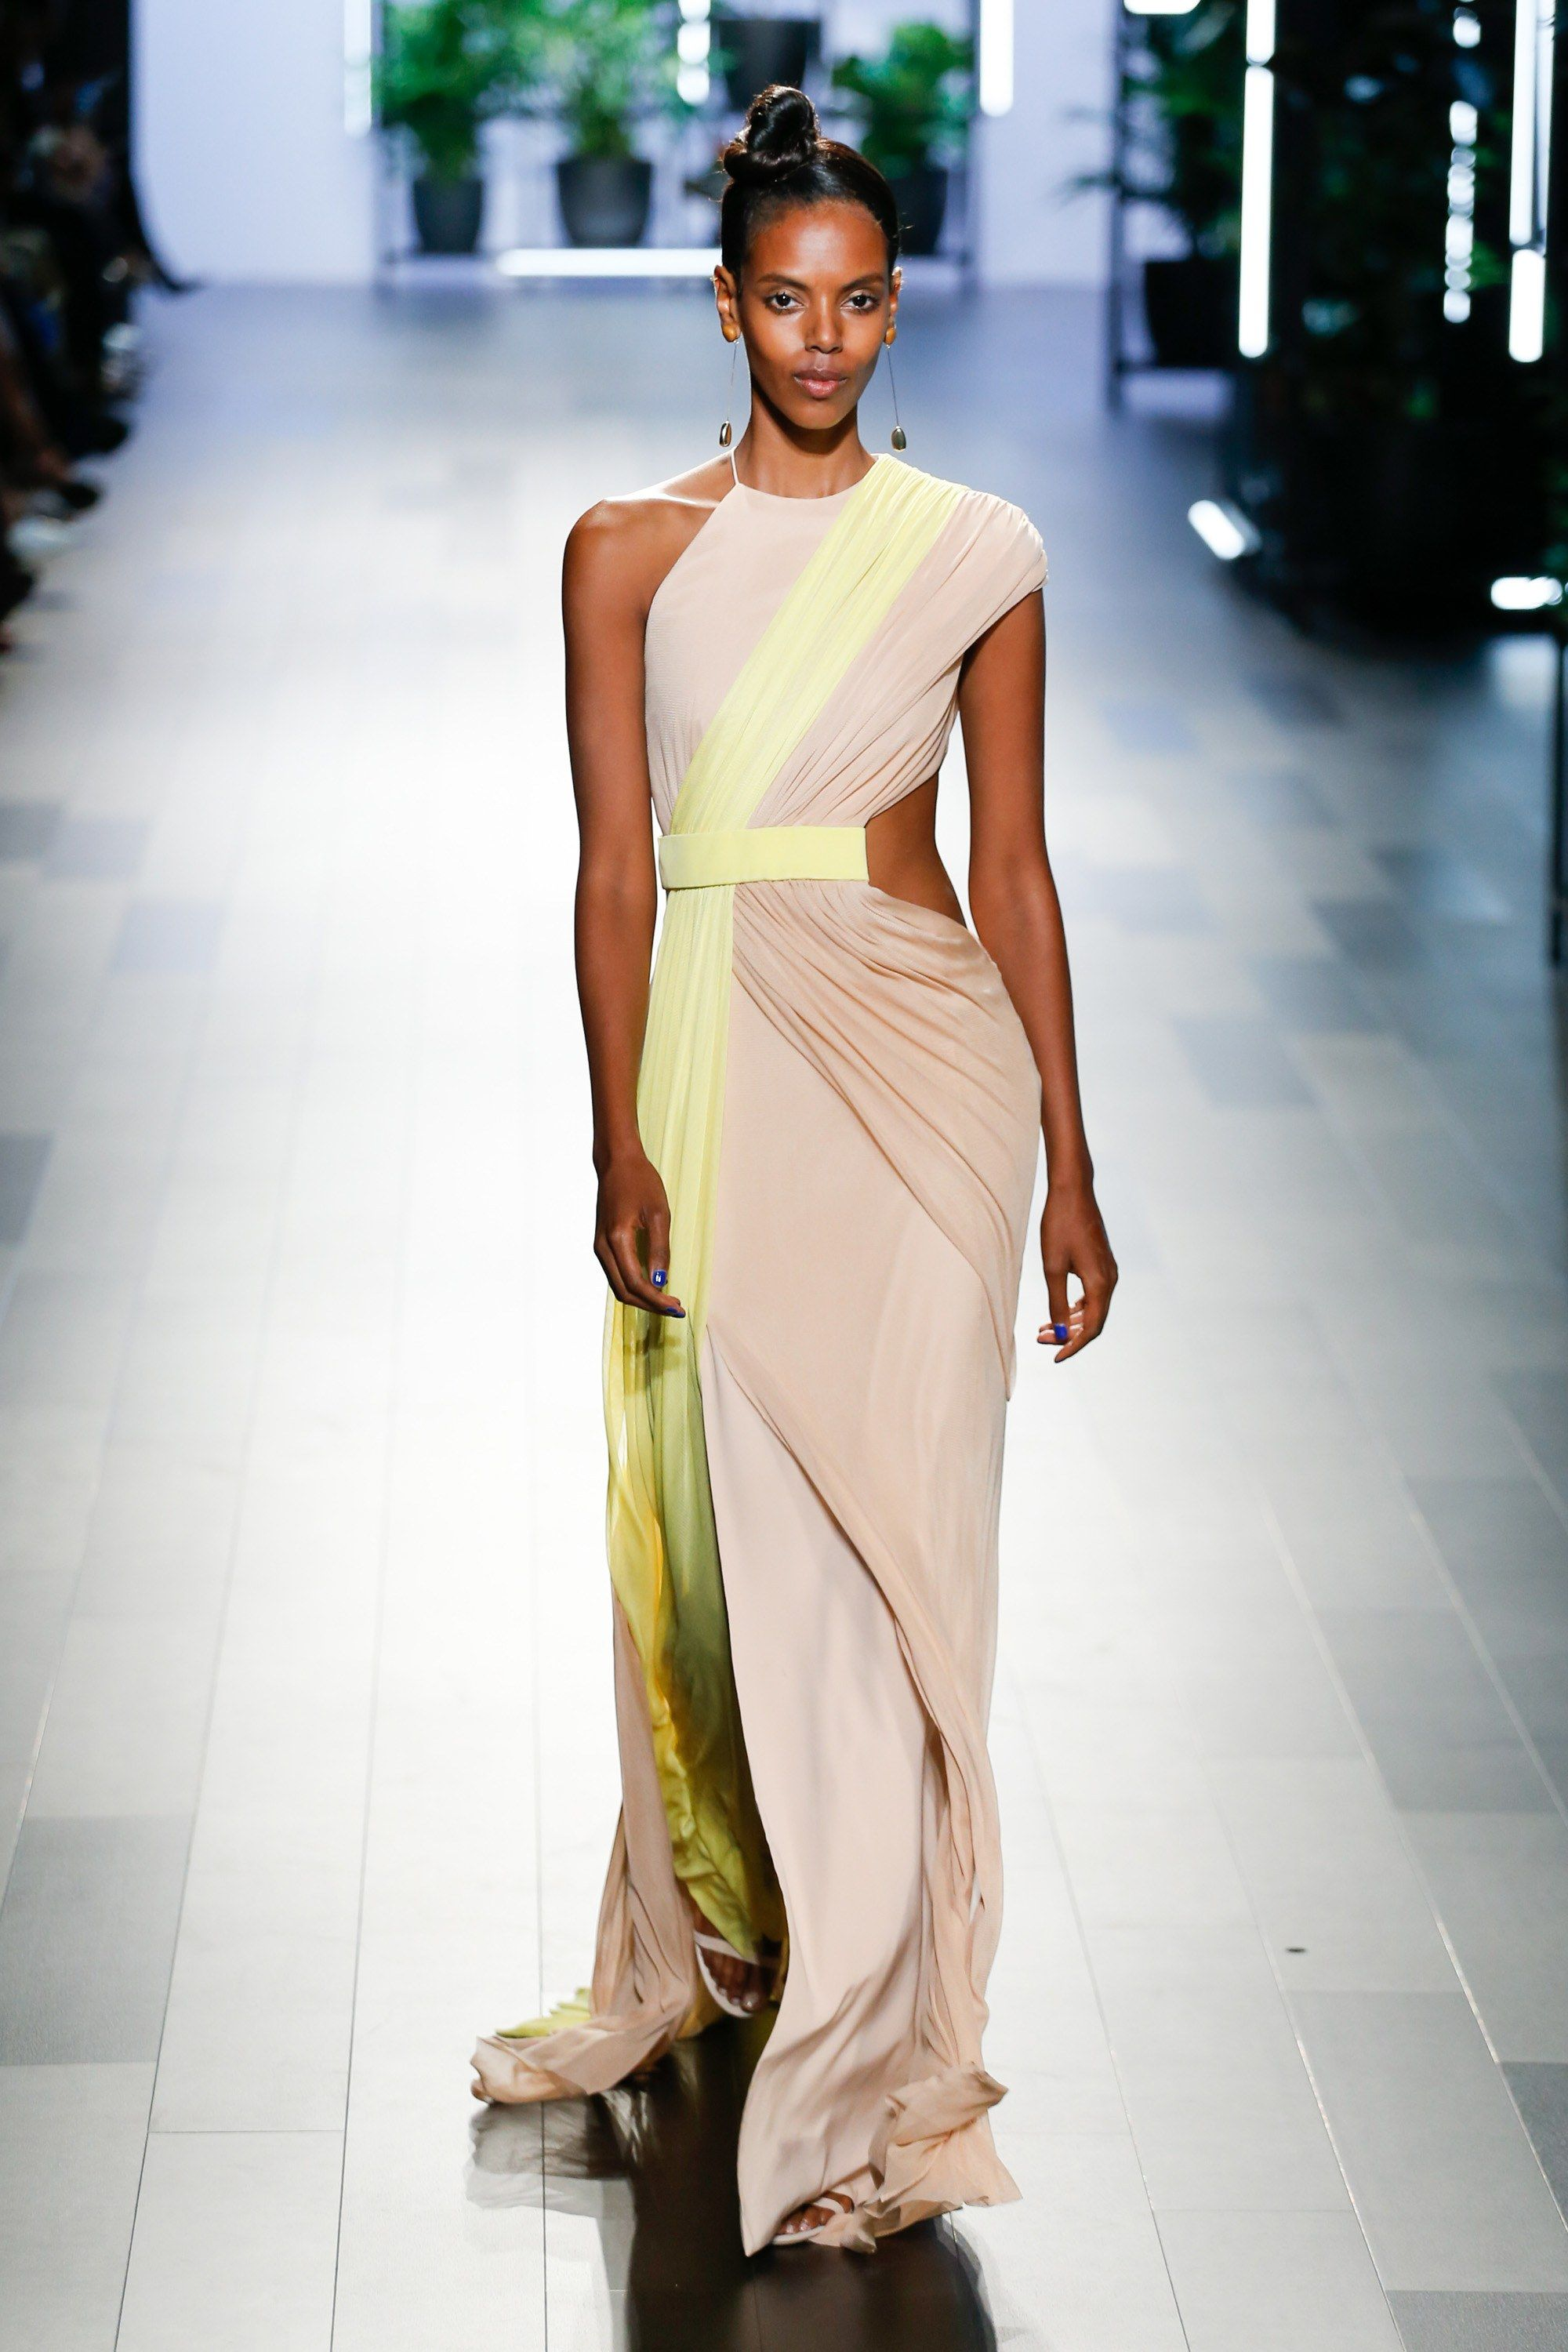 714fa473dfcc CUSHNIE ET OCHS SPRING/SUMMER 2018 RTW COLLECTION SS18 RUNWAY FOOTWEAR  SHOES HANDBAGS LUXURY LEATHER GOODS FLORAL FLORALS VOGUE NYFW NYC NEW YORK  FASHION ...